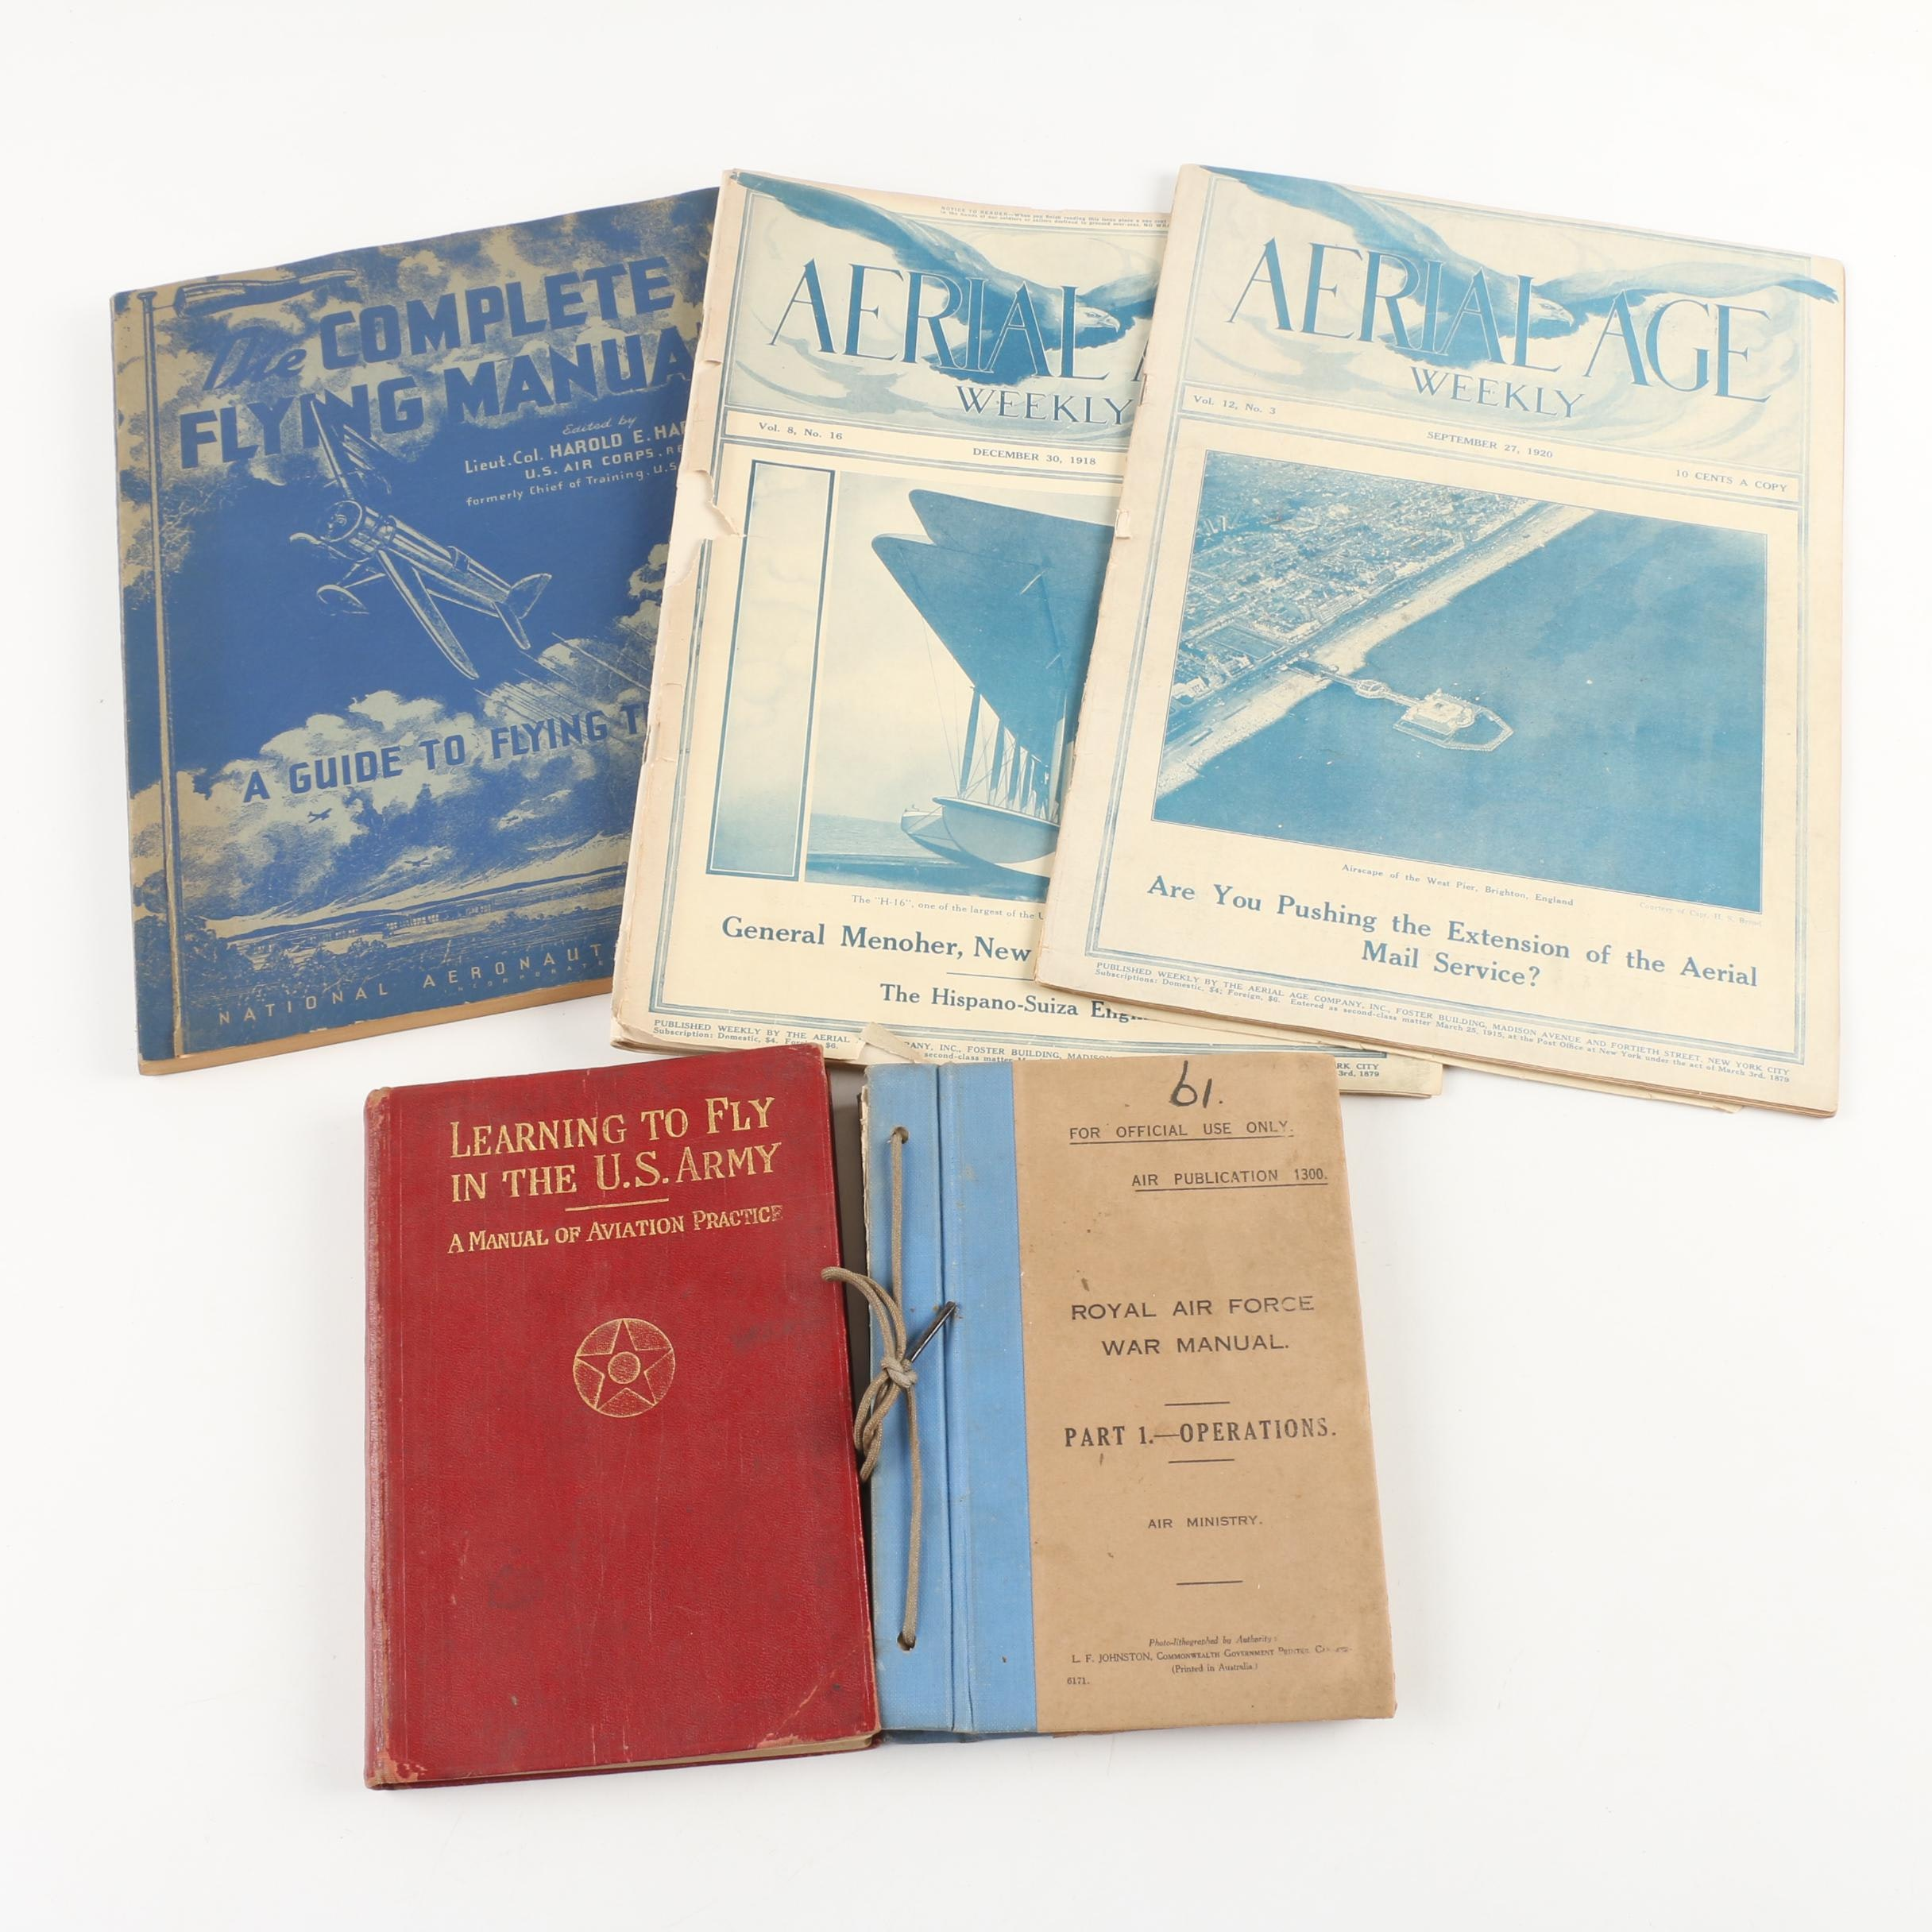 Military and Recreation Aviation Manuals and Magazines